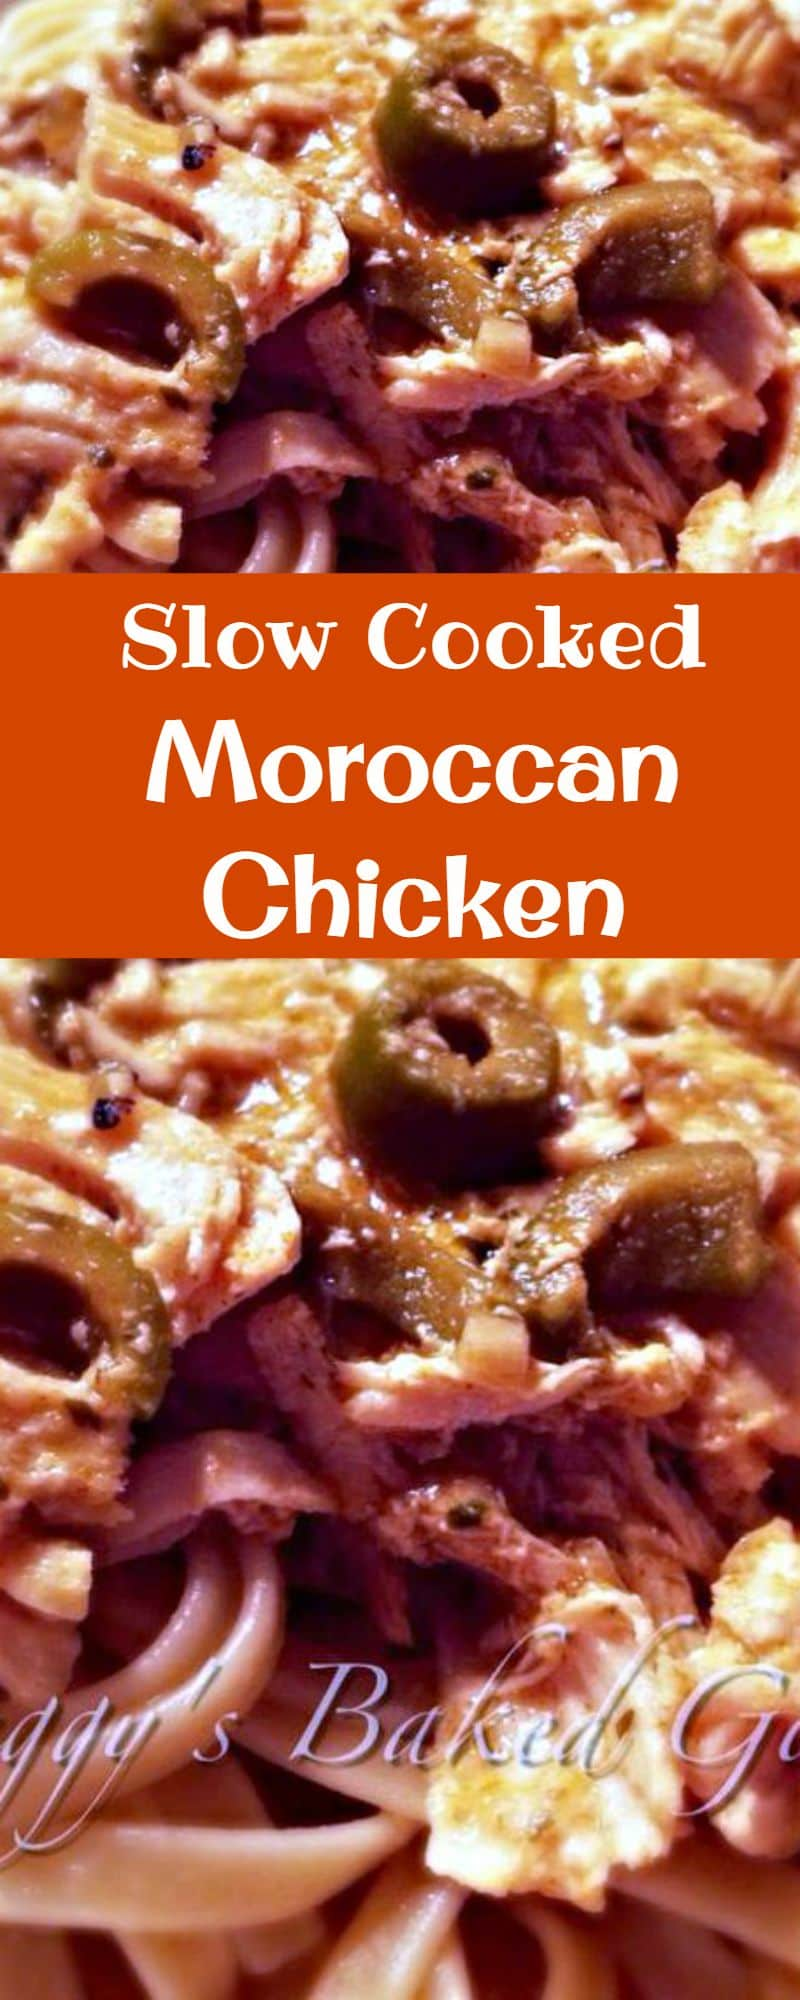 Slow Cooked Moroccan Chicken. The flavours in this are amazing and just close your eyes and imagine the aromas coming from this when it's cooking!